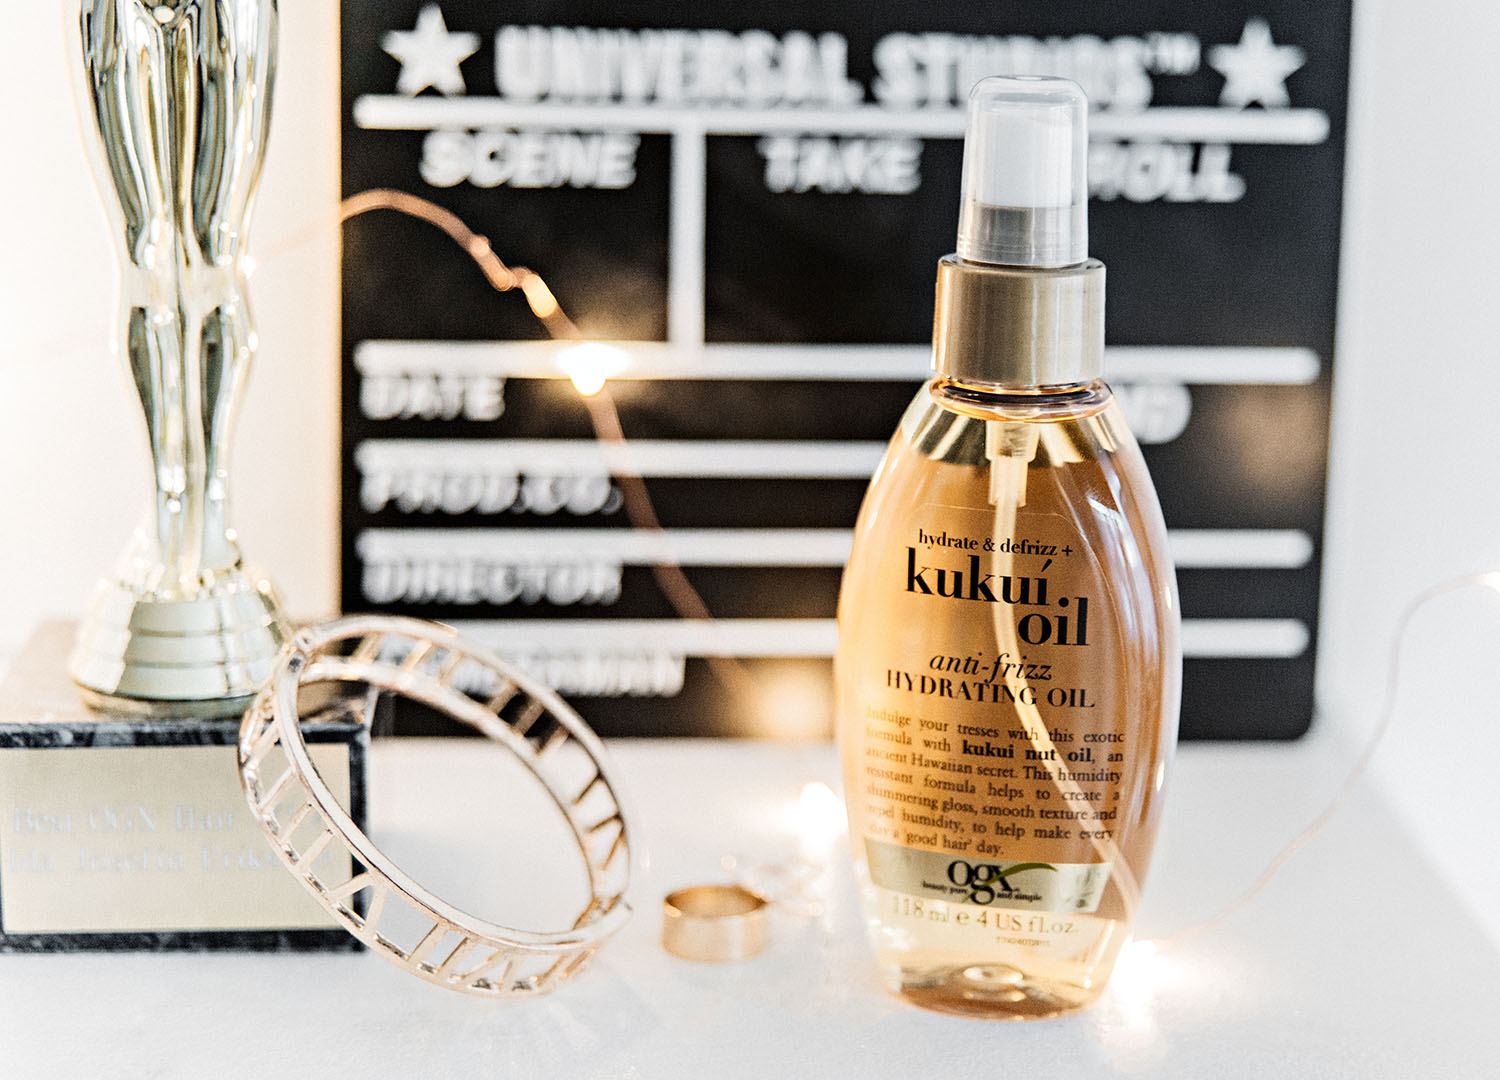 Ogx Kukui Oil Anti-Frizz Hydrating Oil